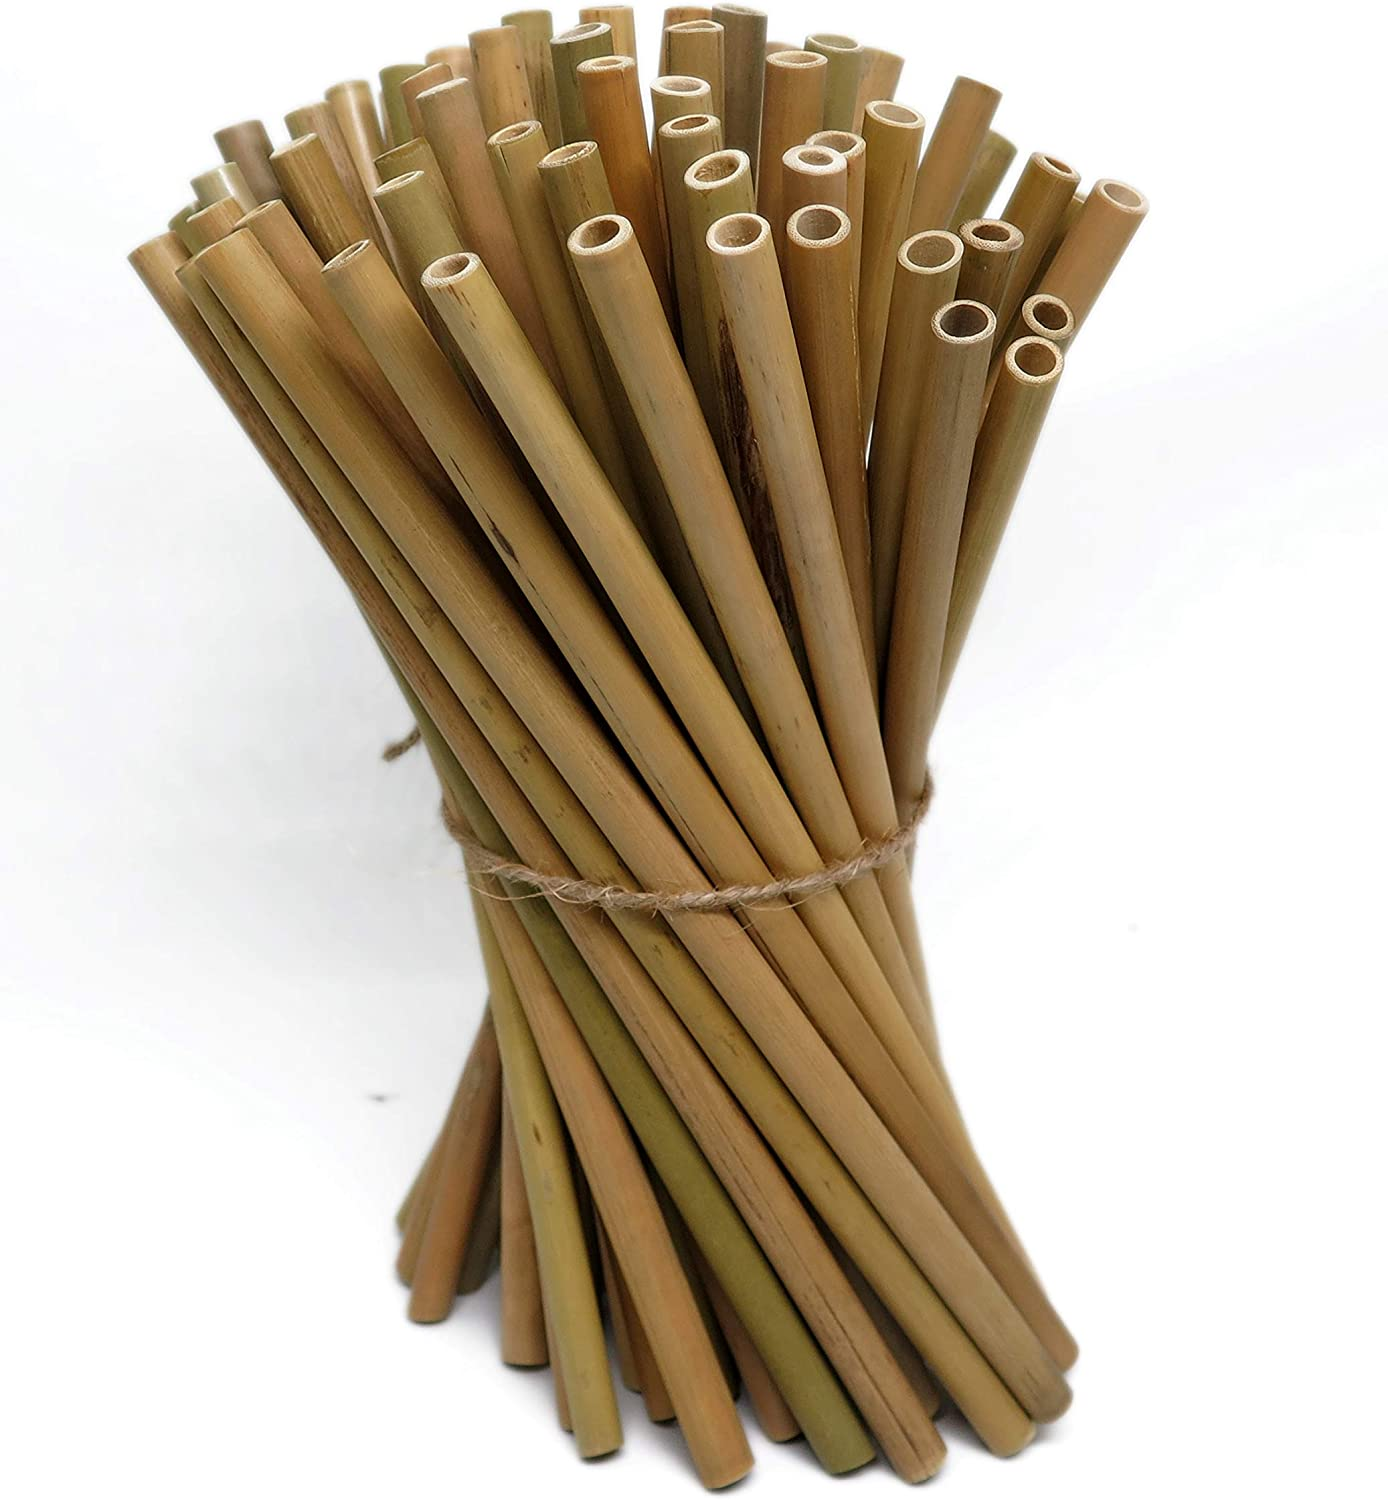 """IA Crafts Bamboo Sticks, Bamboo Straws, Bamboo Stakes Craft Supplies, for Crafts and DIY, Natural Bamboo Color, 7.87"""" Long and 0.28""""-0.32"""" in Diameter"""